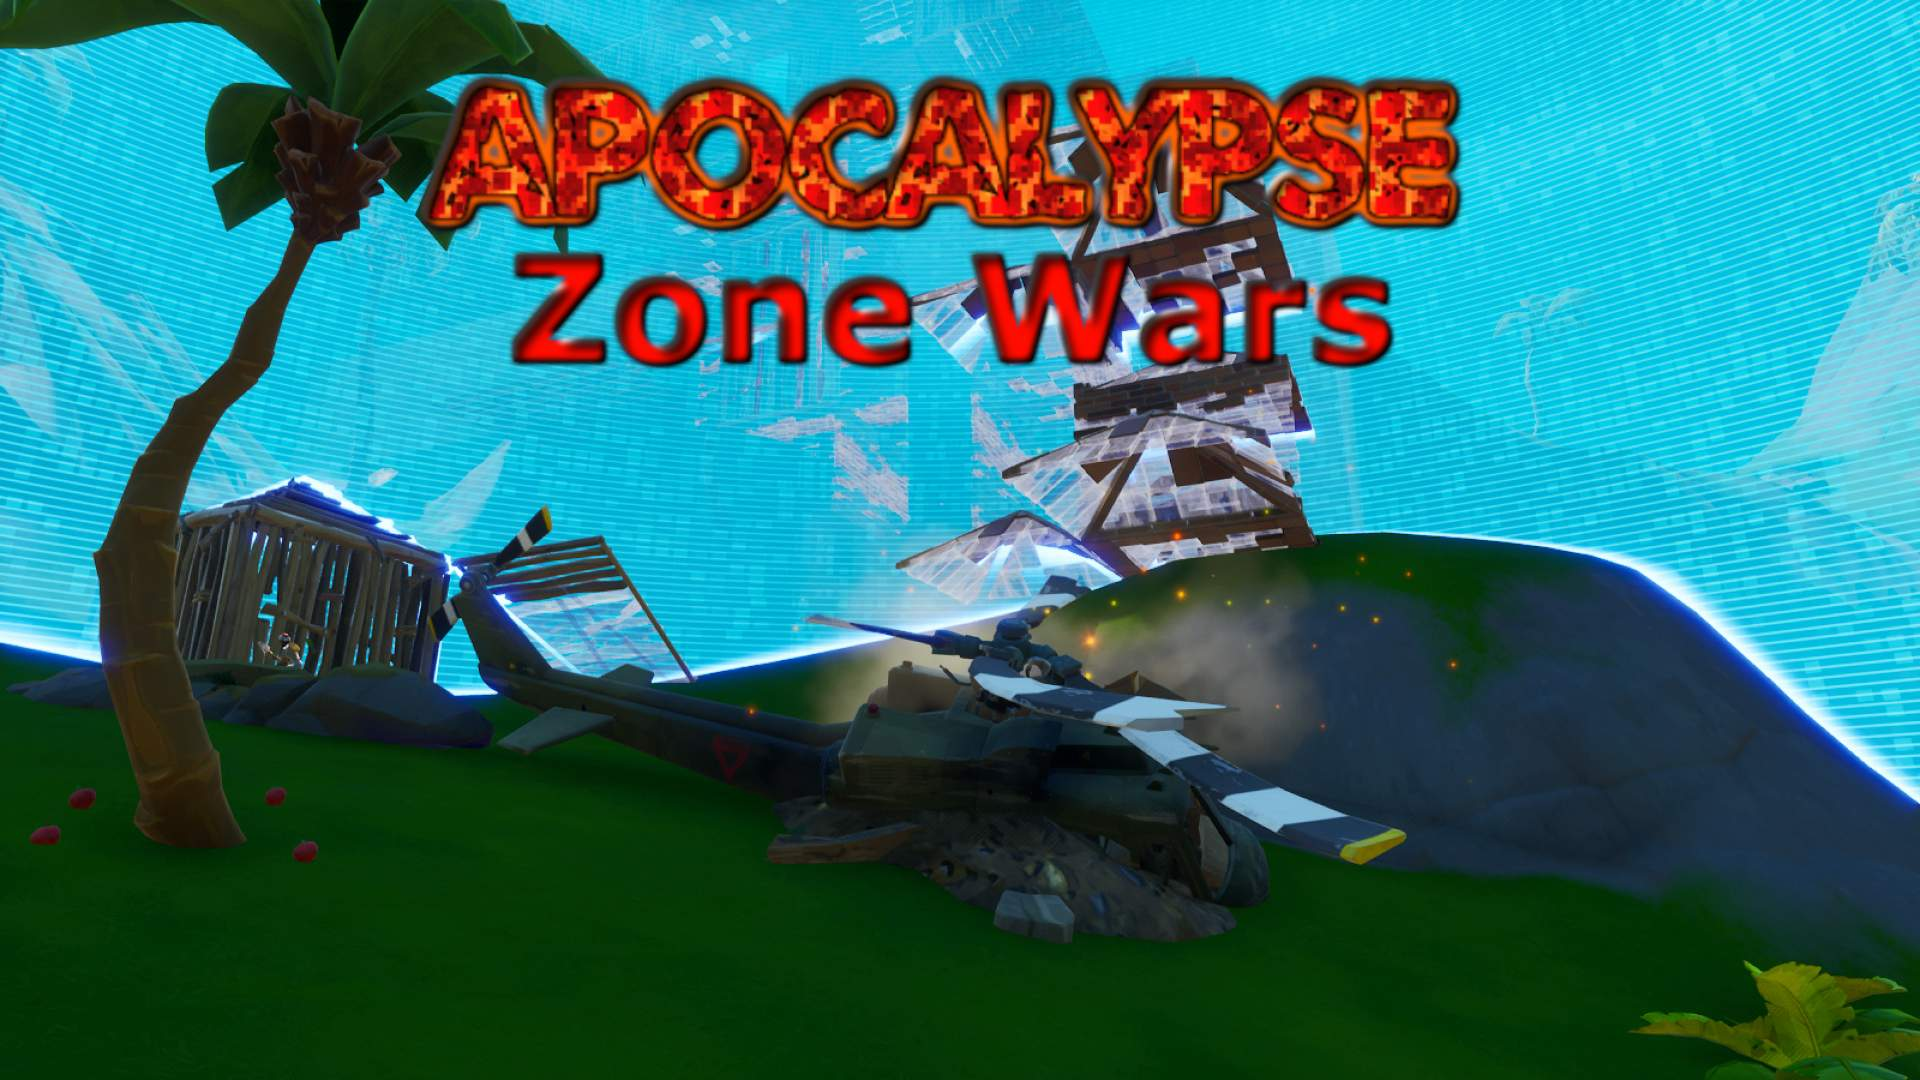 APOCALYPSE ZONE WARS